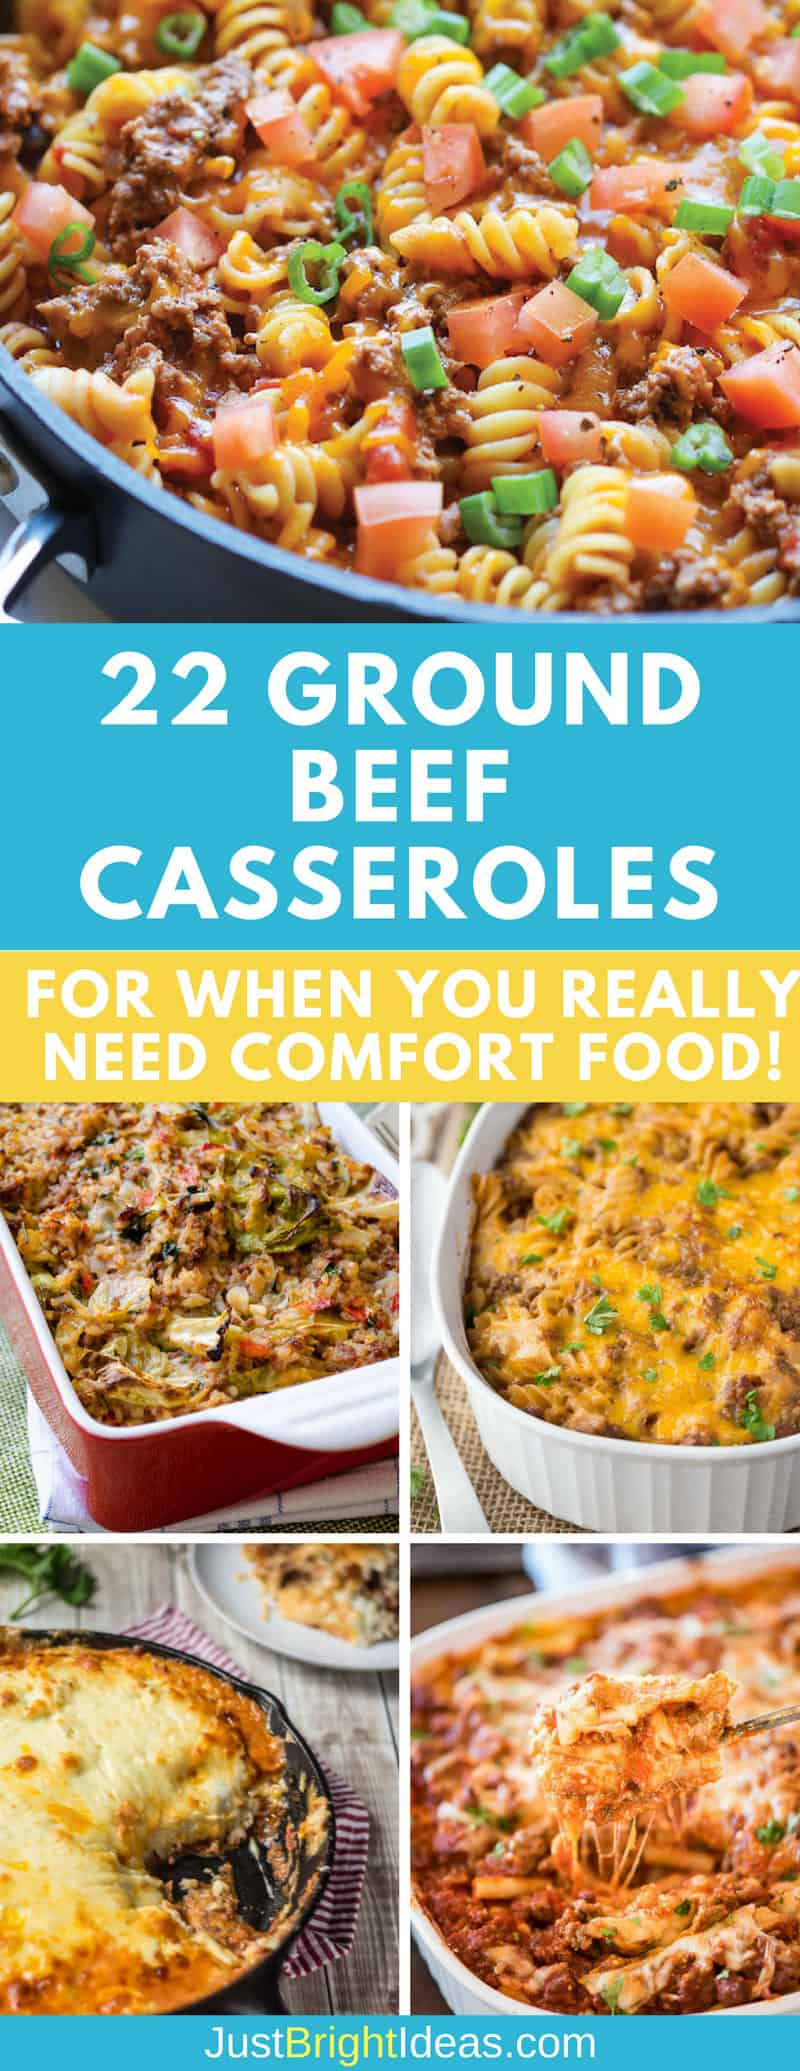 Ground Beef Casseroles - Pinterest